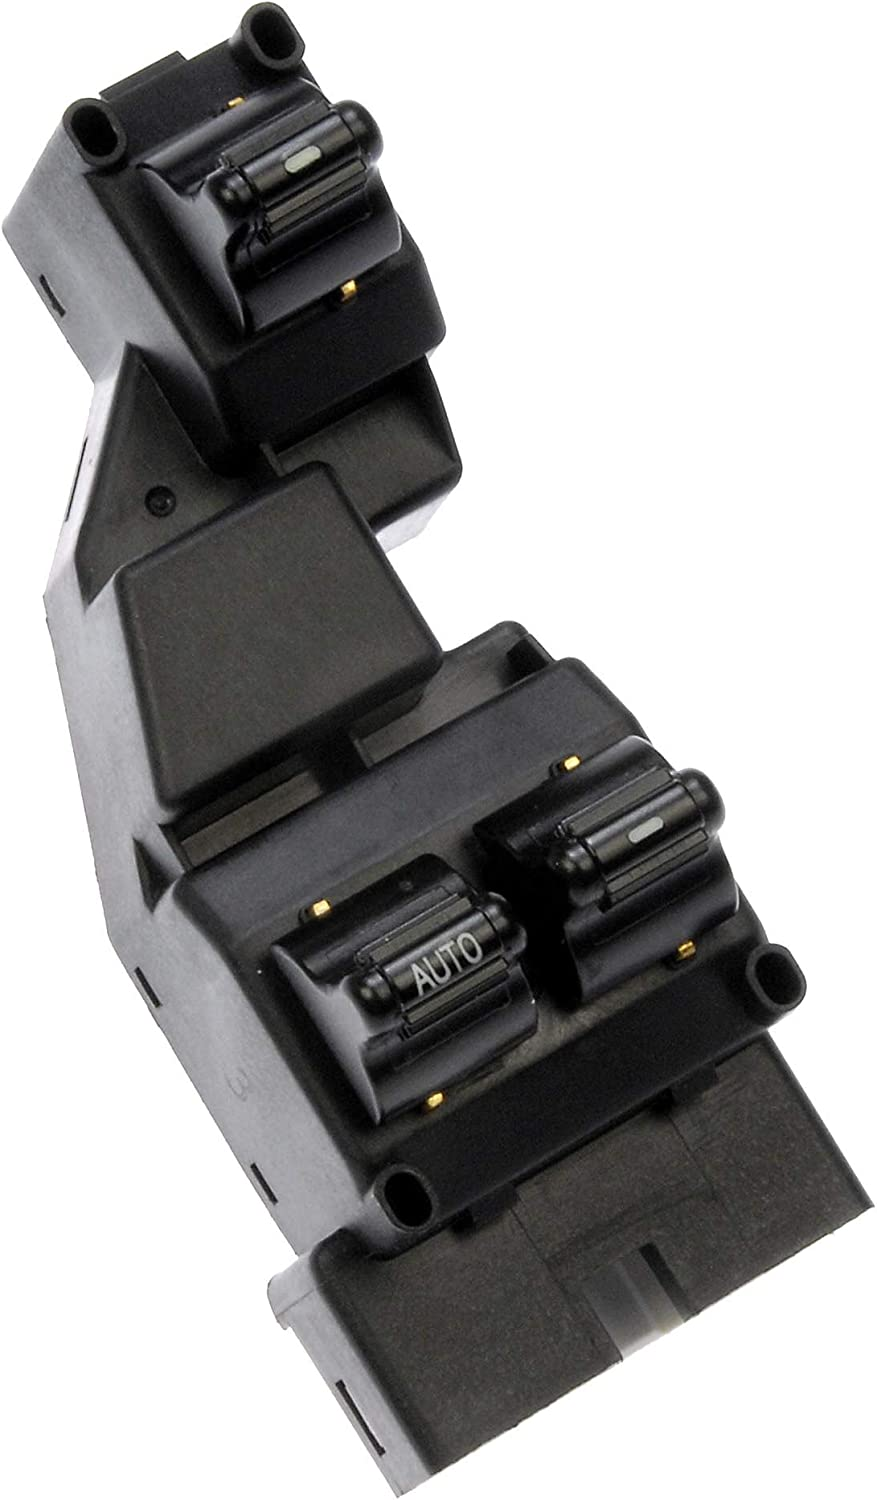 Dorman 901-440 Front Driver Side Door Window Switch for Select Dodge Models